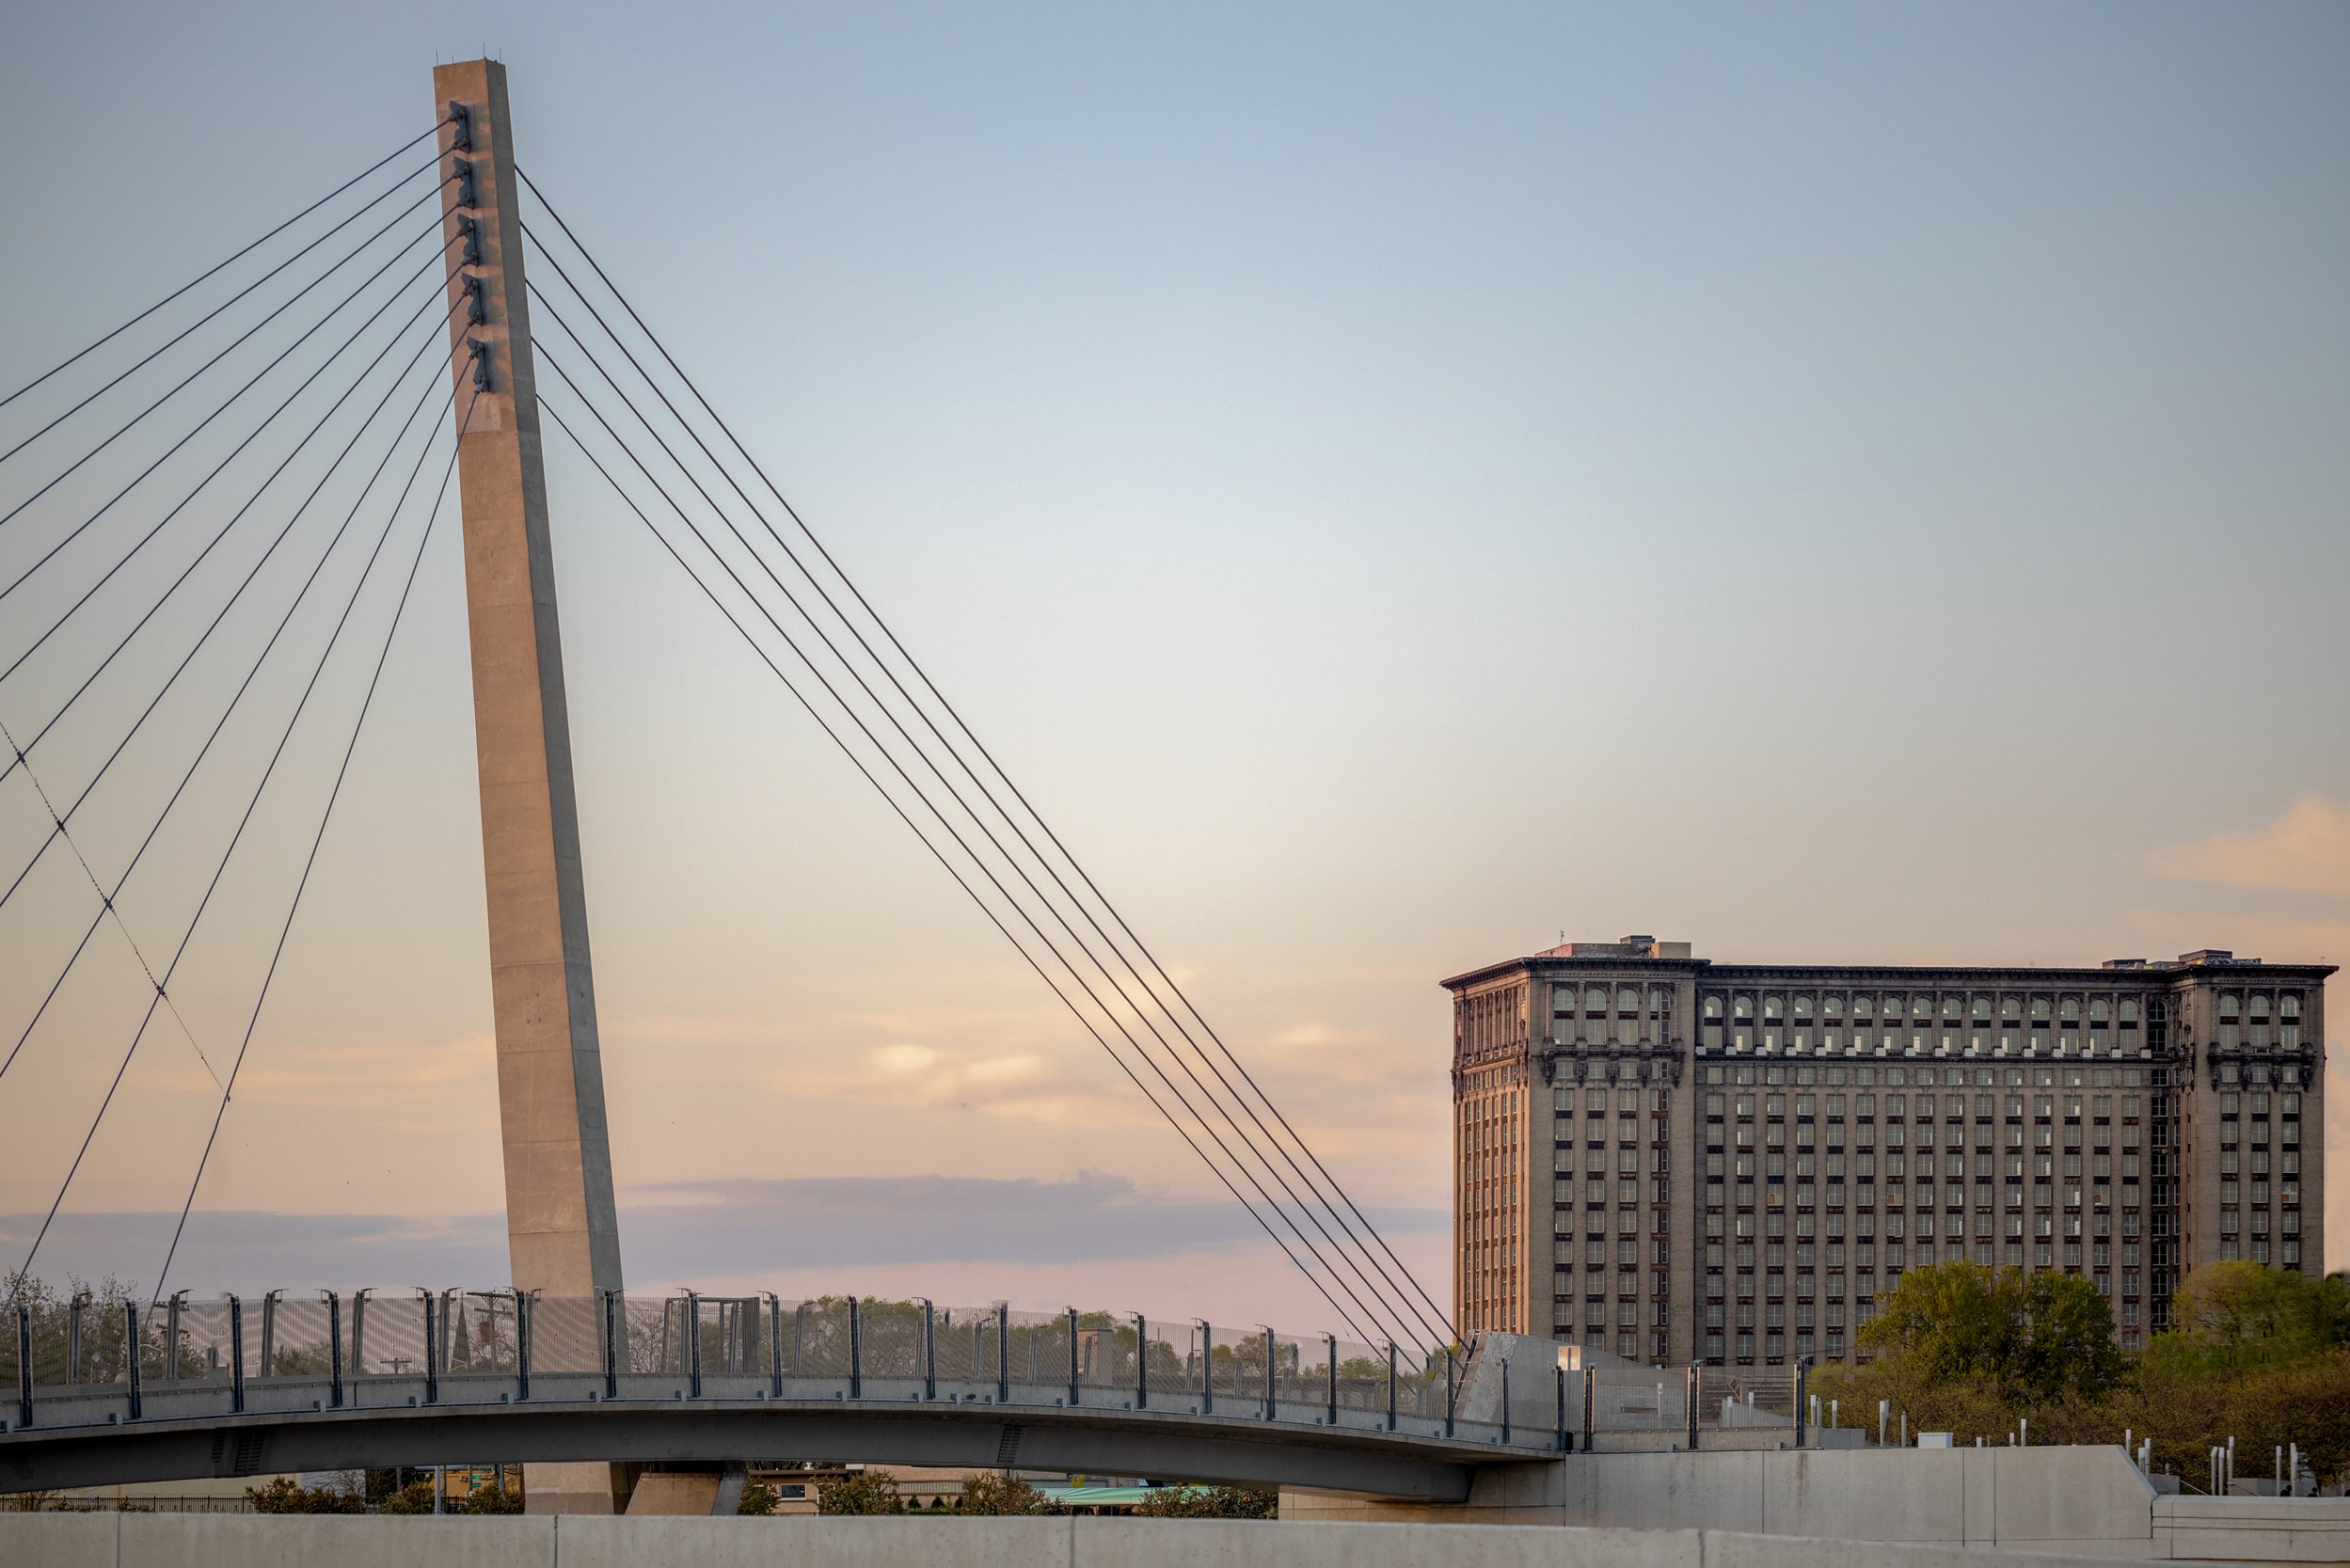 Bagley Avenue Pedestrian Cable Bridge Project with Michigan Central Station in background in Detroit Michigan at sunset Urban Design and Infrastructure